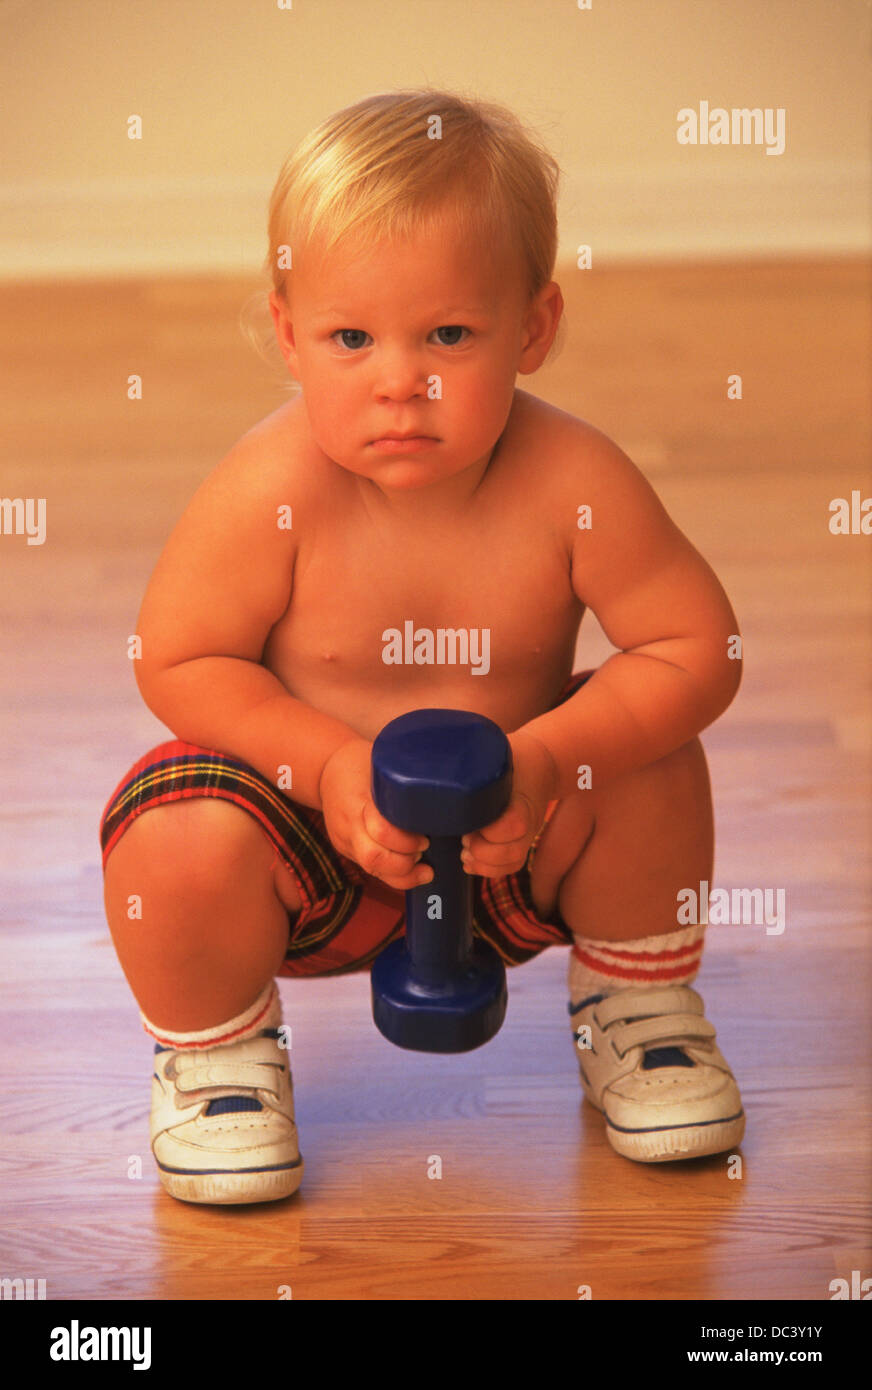 Toddler boy lifts hand weight - Stock Image